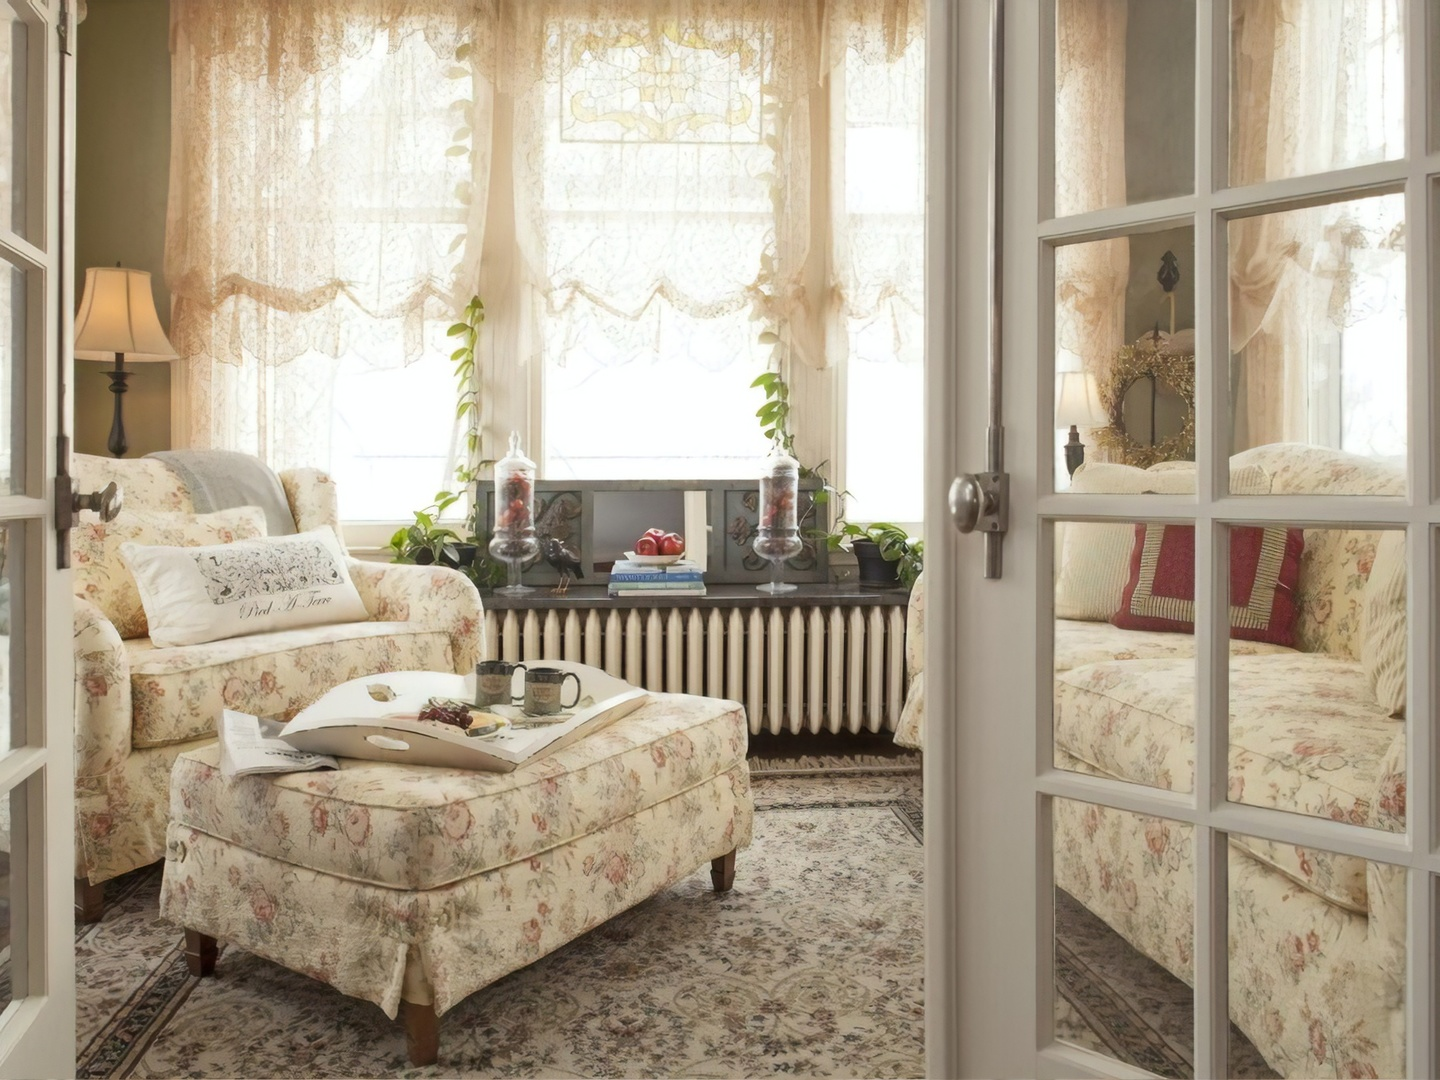 A room filled with furniture and a large window at A G Thomson House Bed and Breakfast.